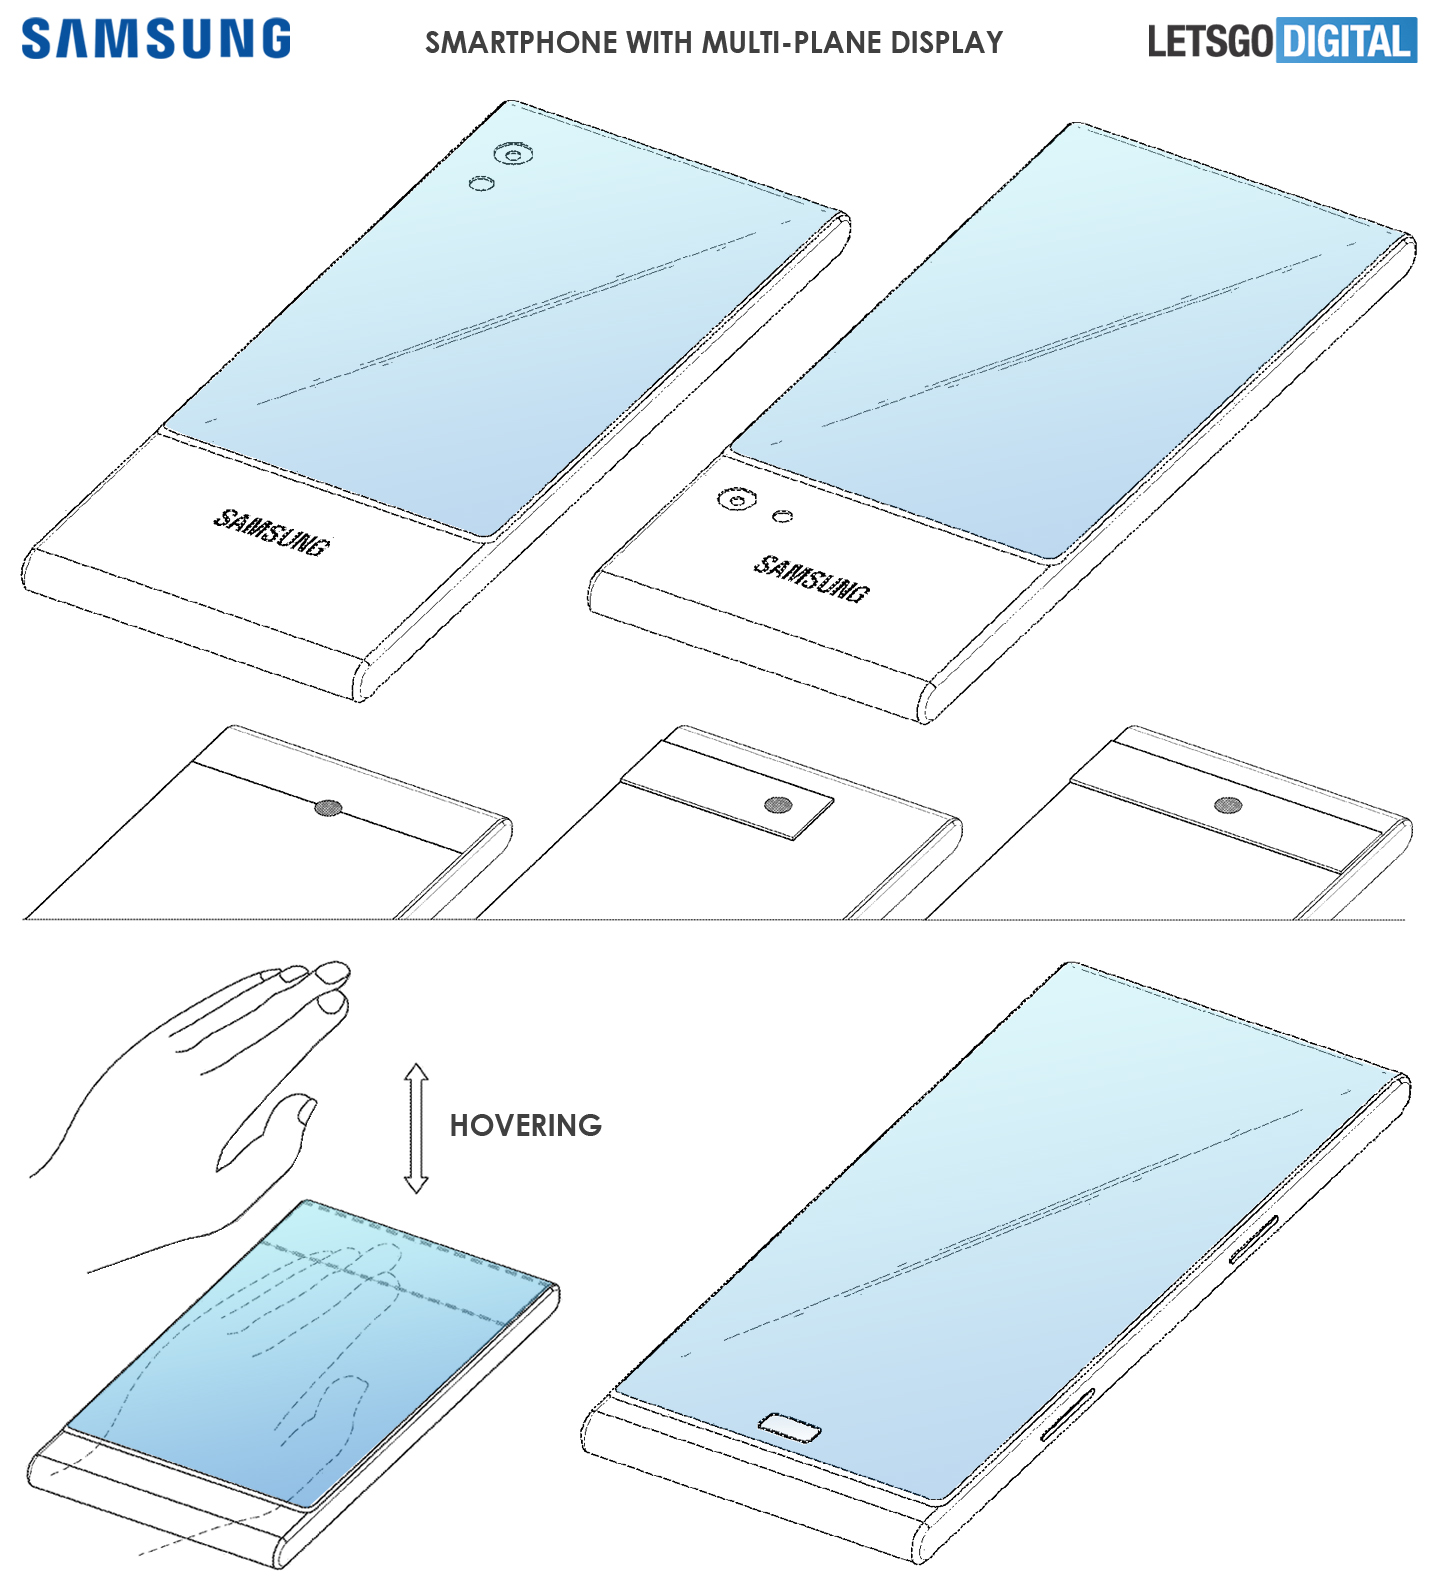 Samsung smartphone display